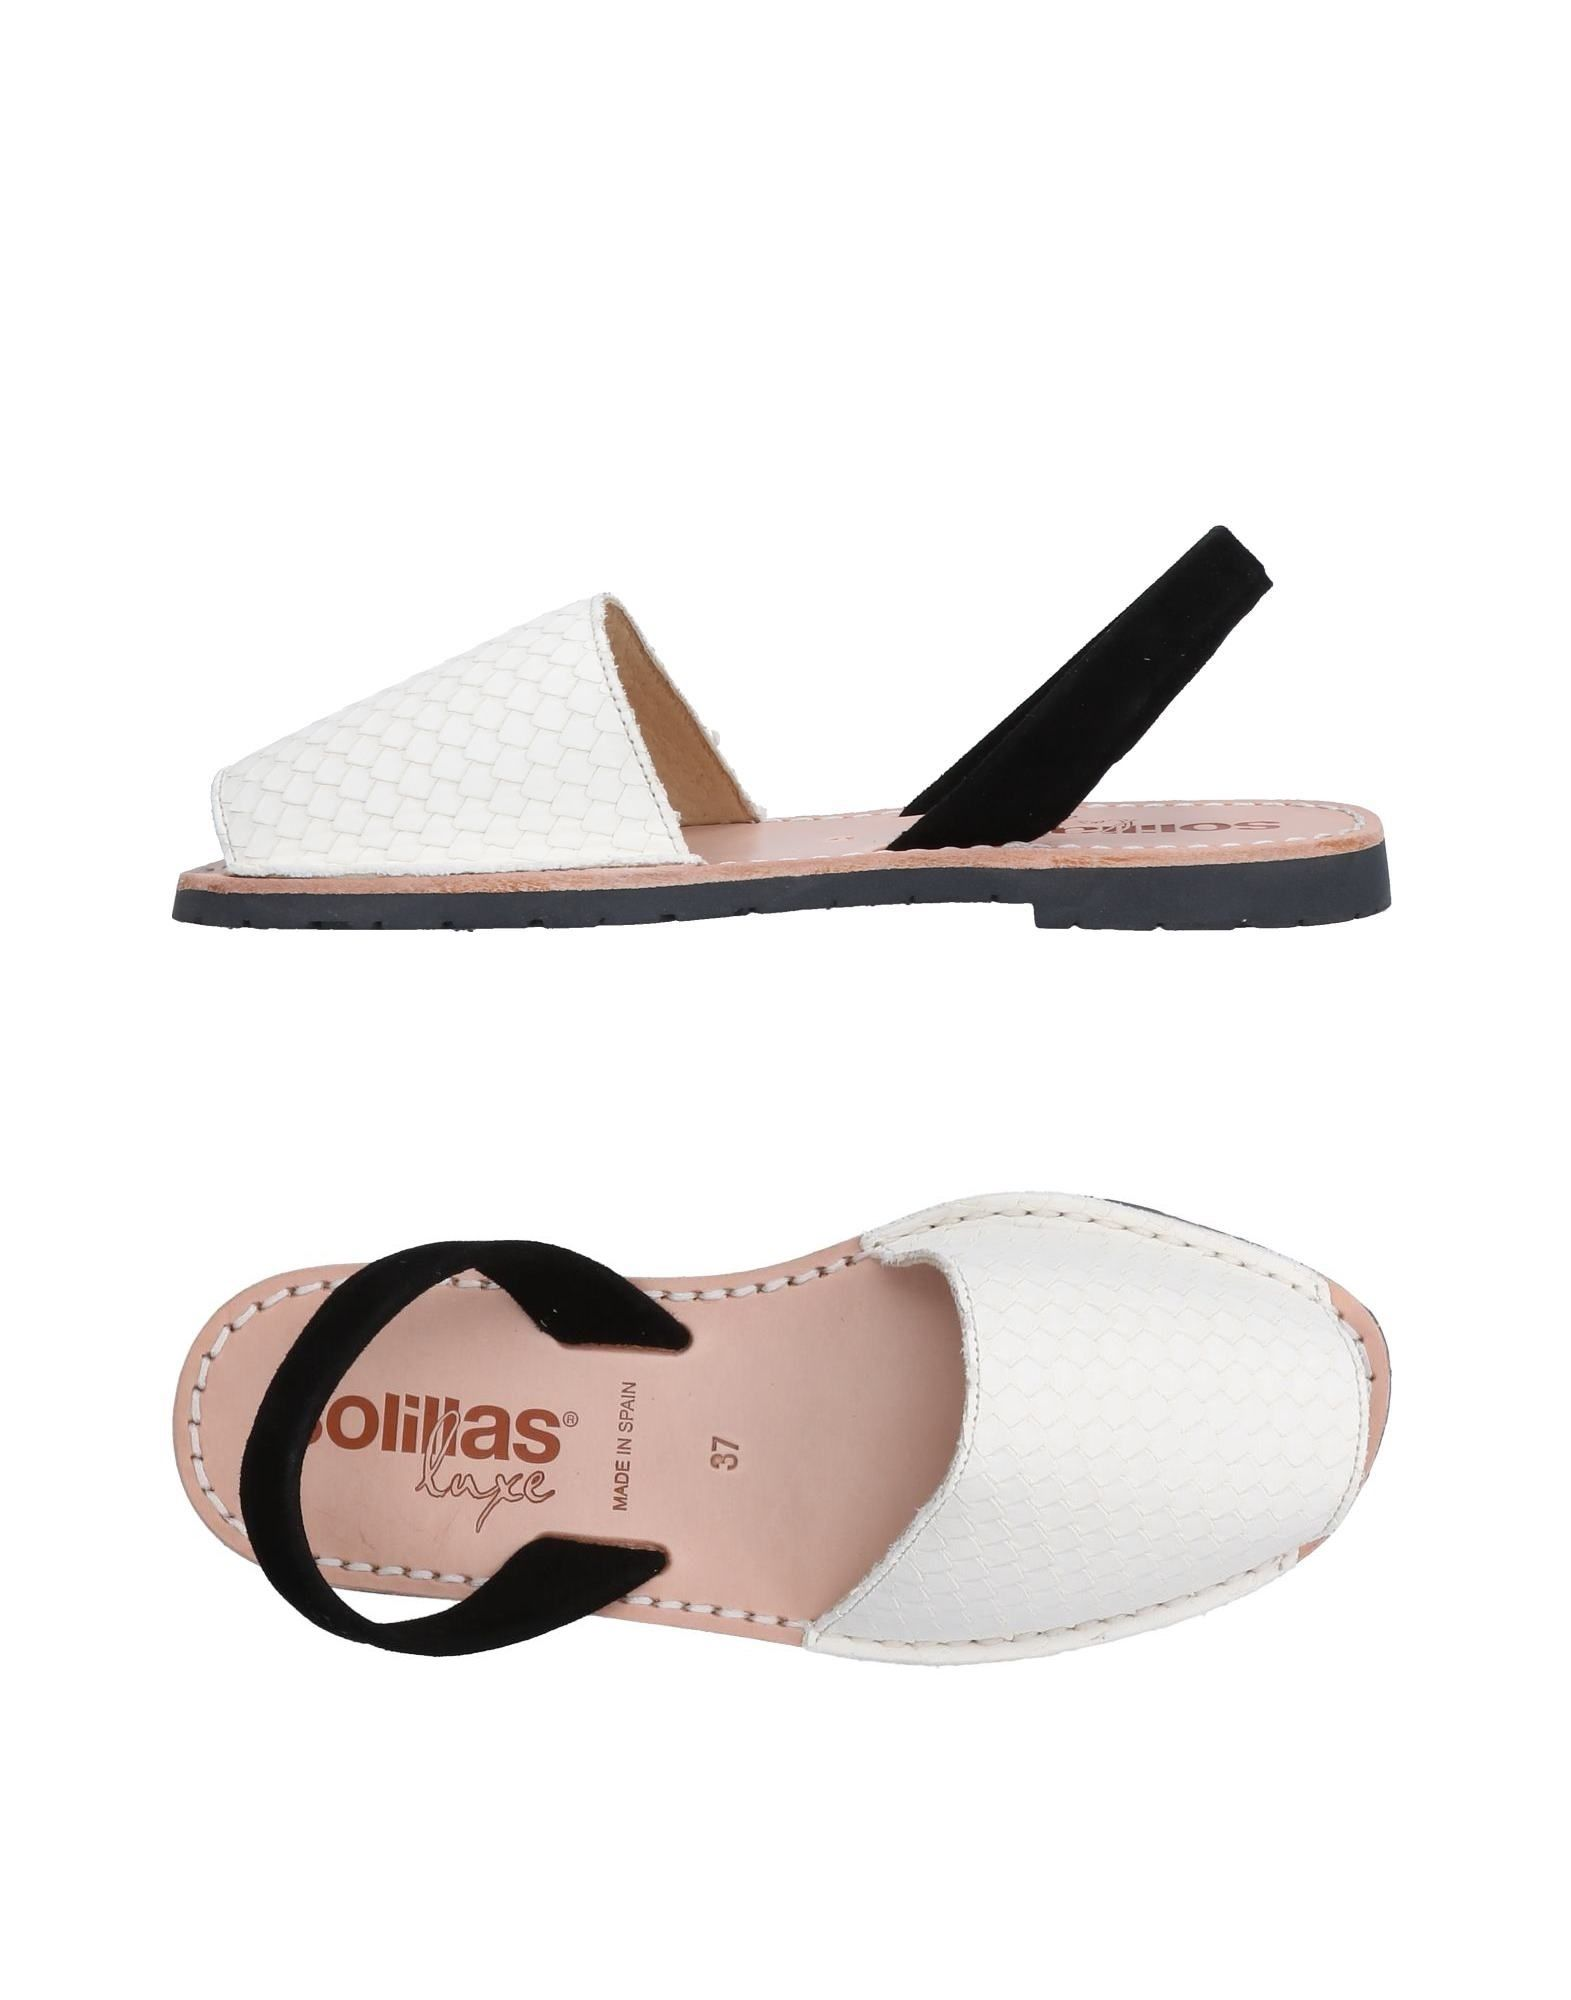 Solillas® Sandals Sandals - Women Solillas® Sandals Solillas® online on  Canada - 11522693LT 49188f